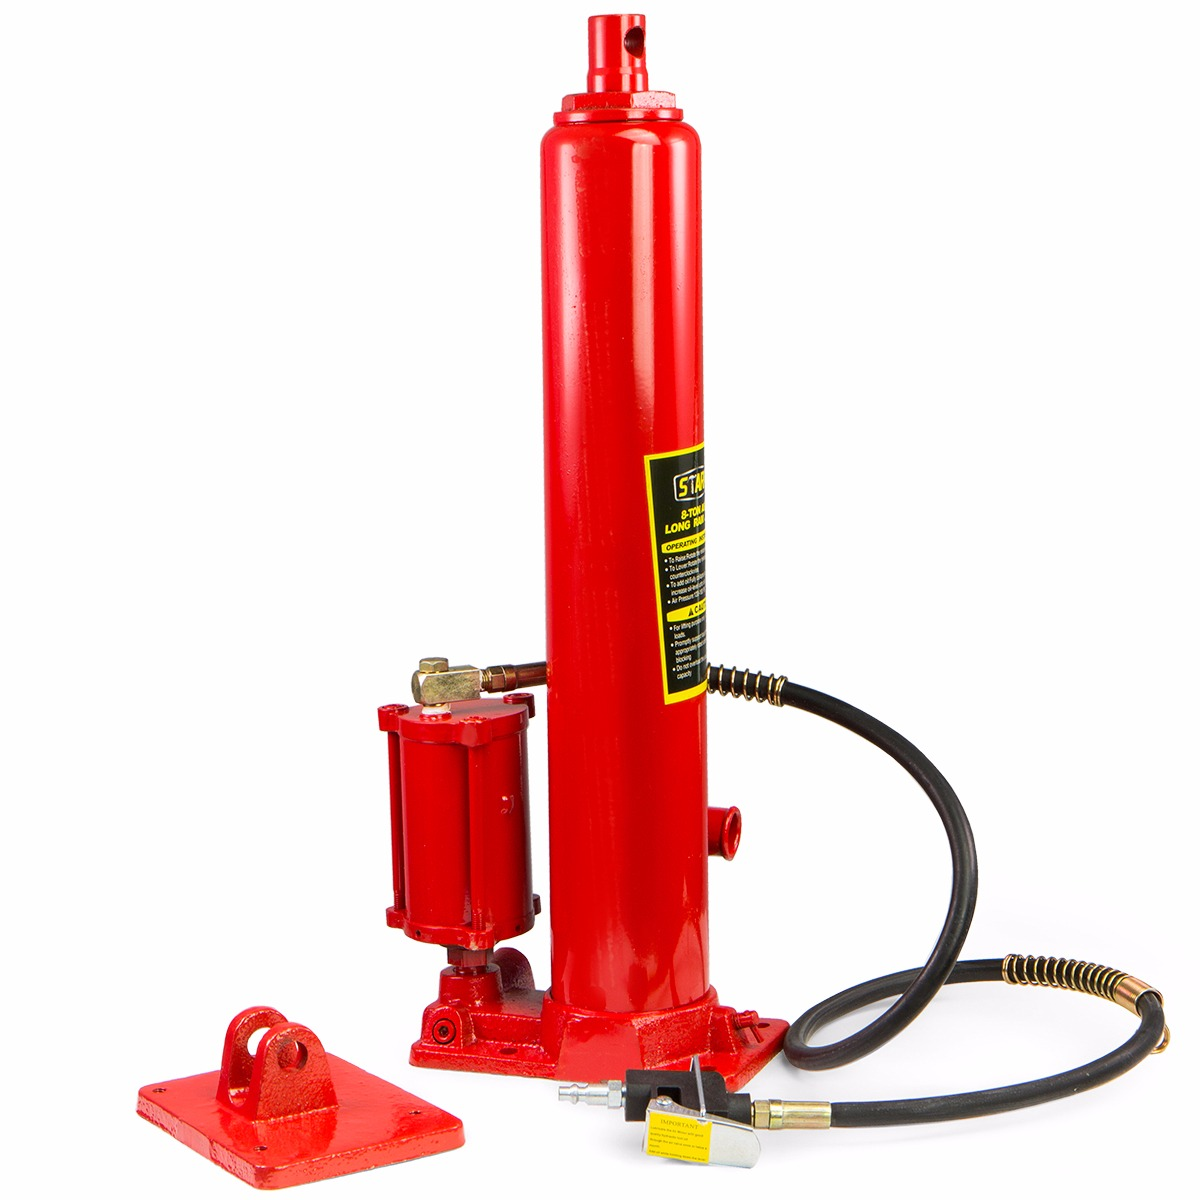 Air Bag Jack >> 2 in1 8 ton air manual Hydraulic Ram Jack Pump Engine Lift hoist Cherry Picker | eBay